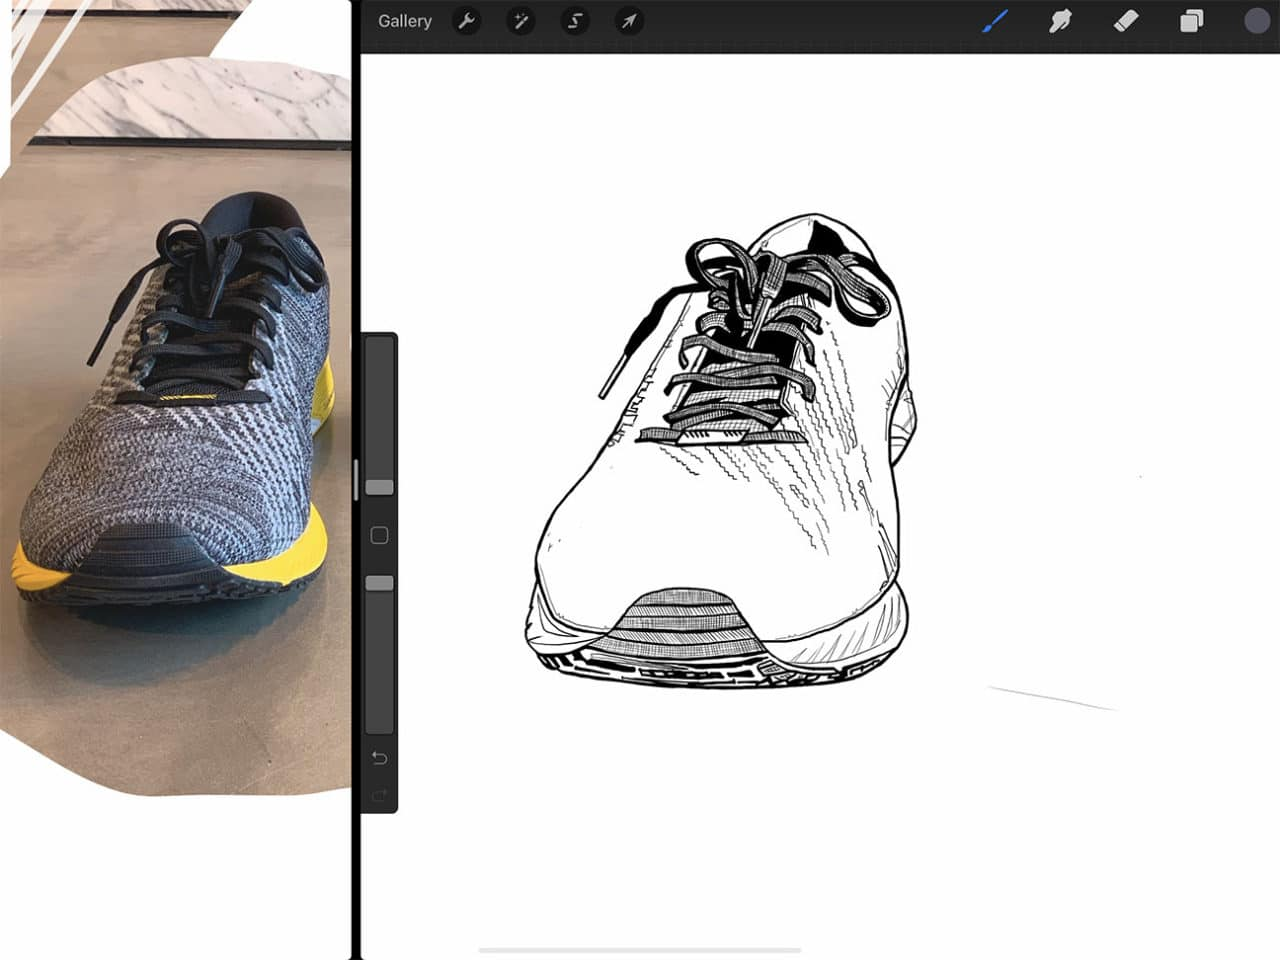 Procreate tutorial: the steps for how to draw shoes are nearly the same on iPad Pro as they would be on paper.